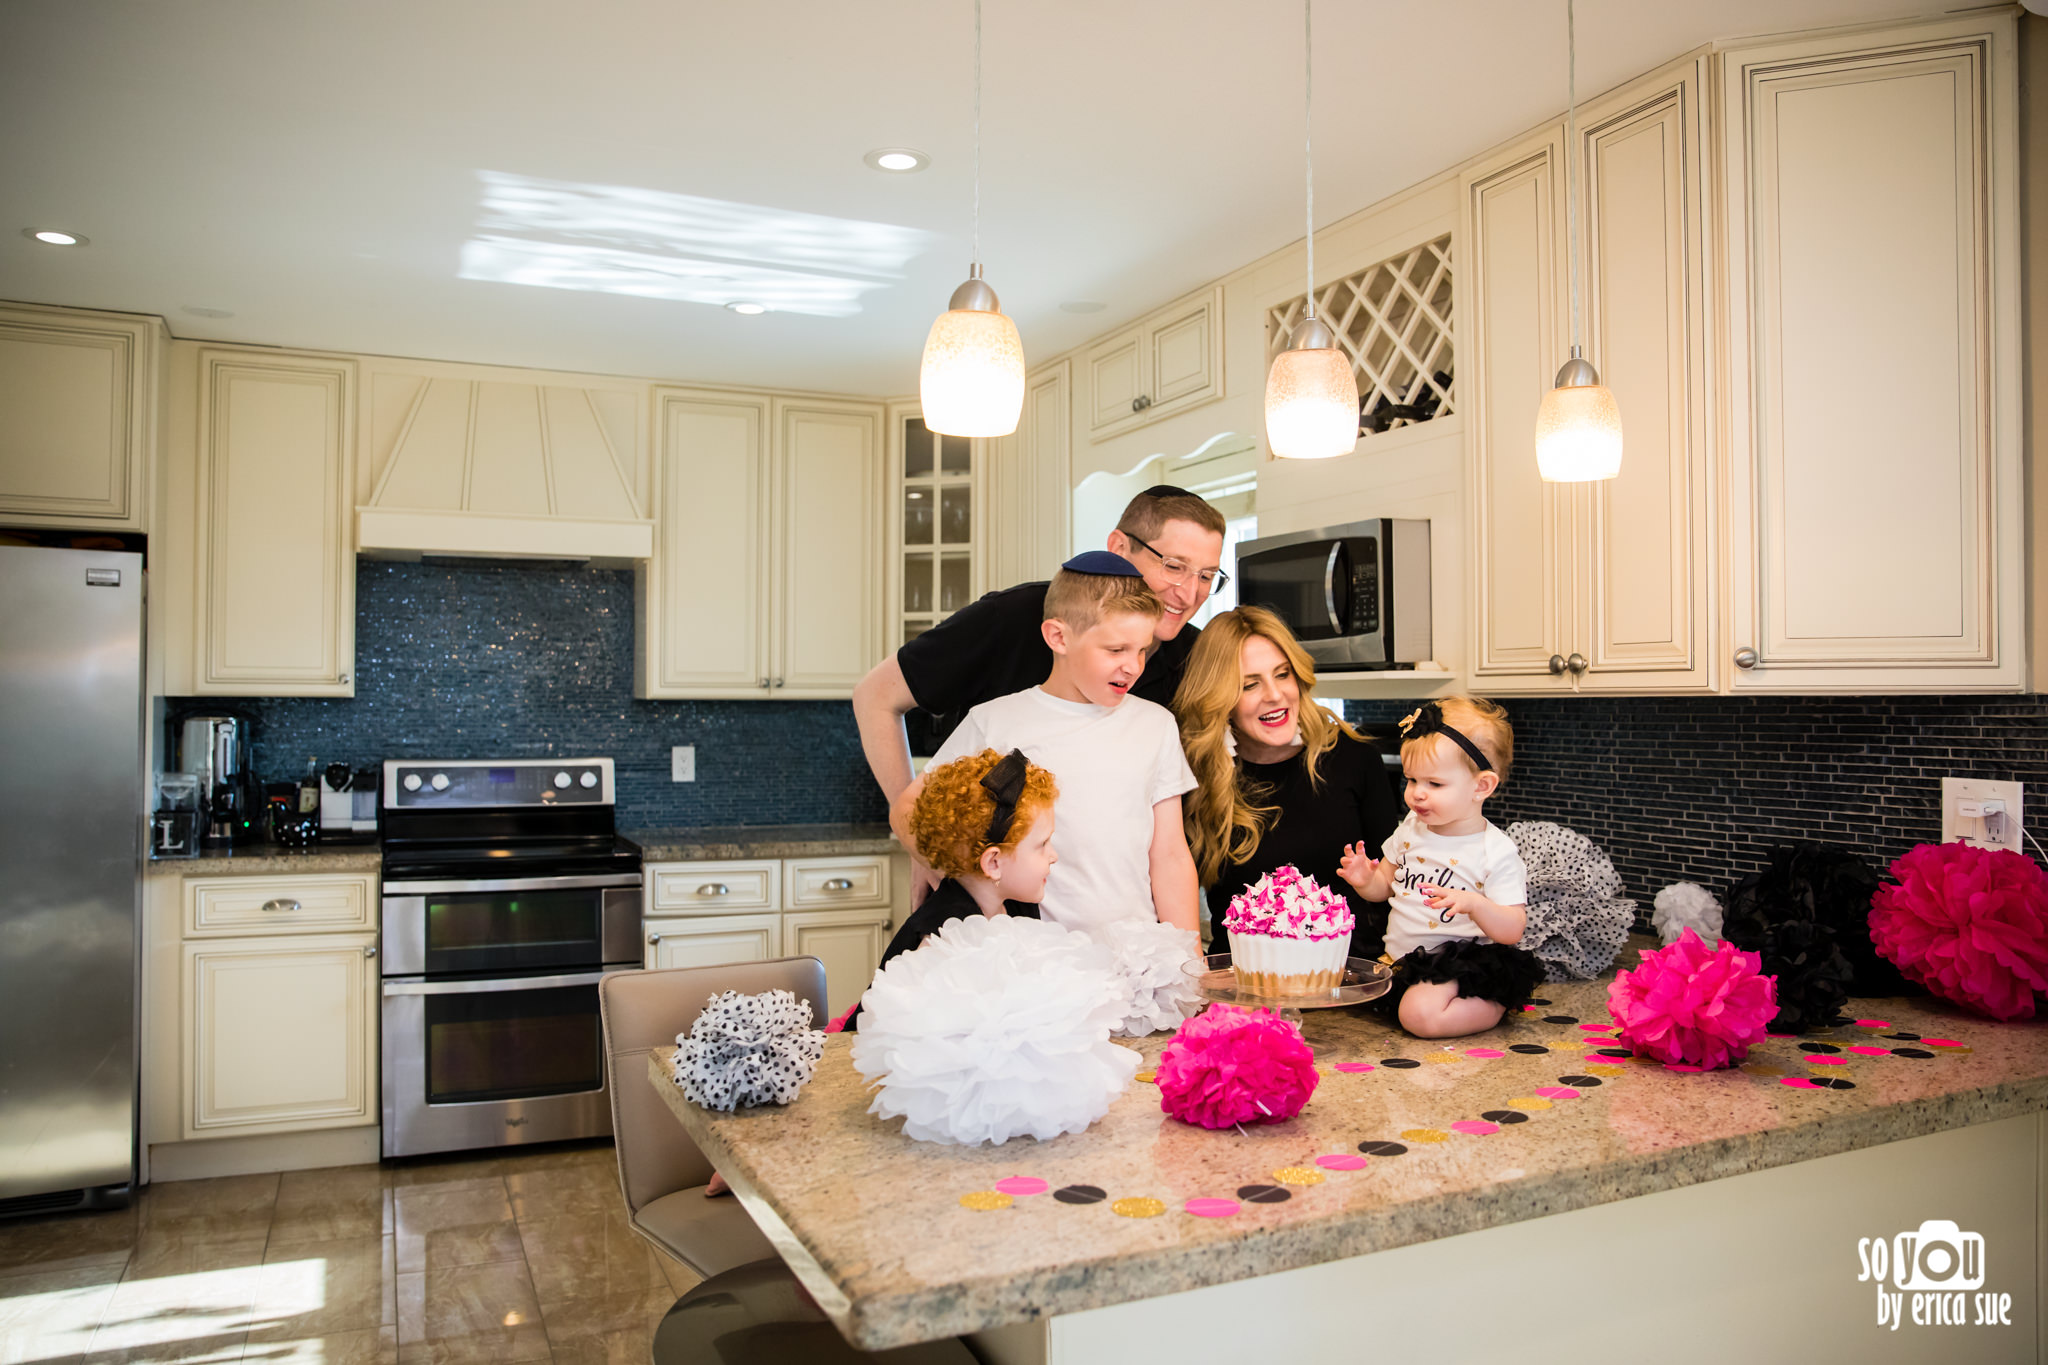 so-you-by-erica-sue-hollywood-fl-photographer-in-home-lifestyle-1st-birthday-cake-smash-3898.jpg